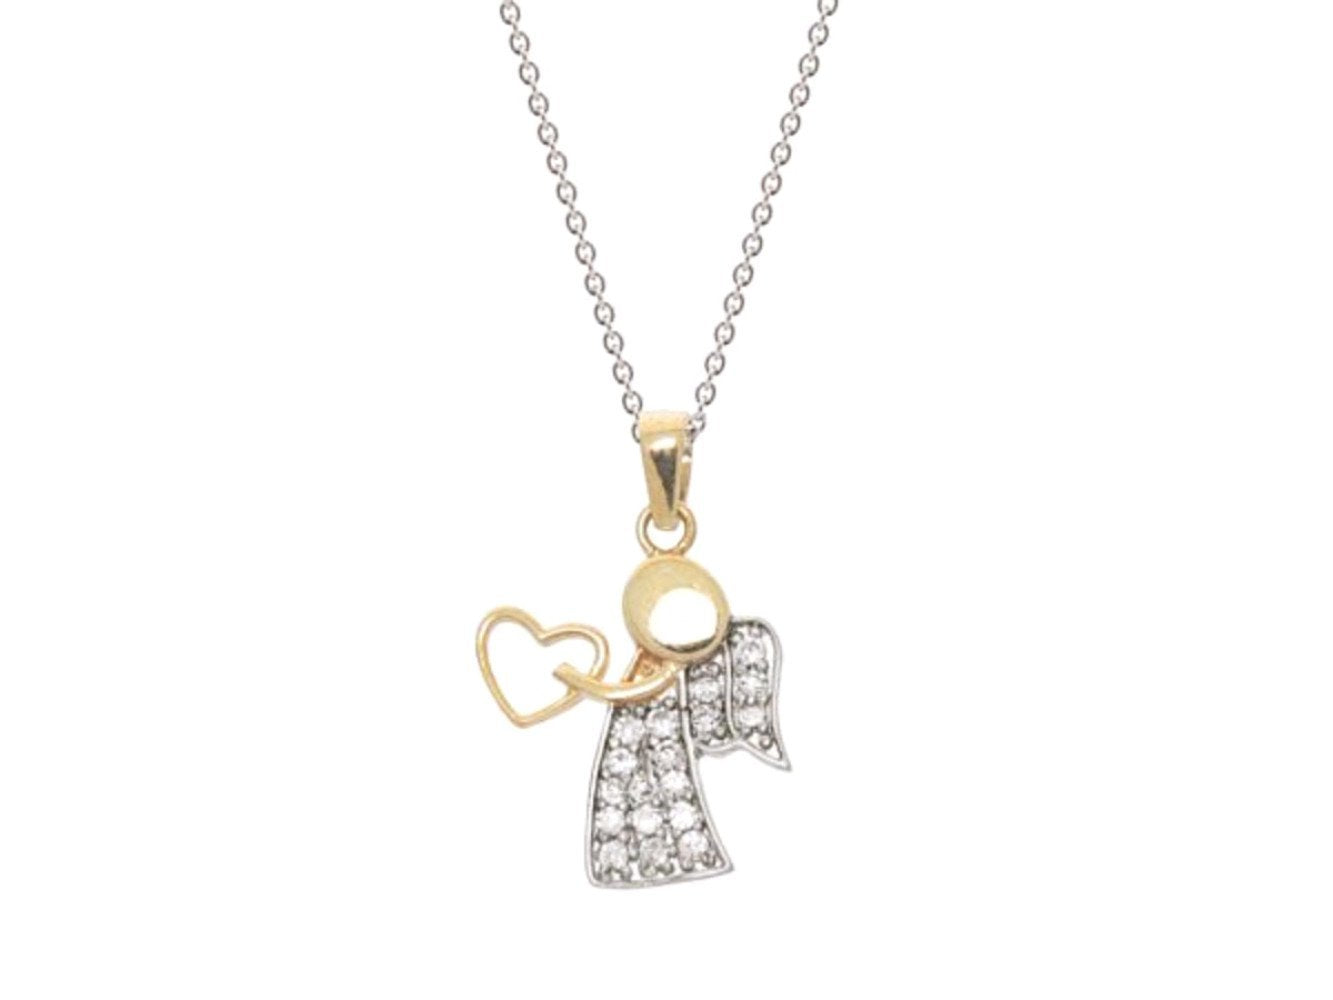 Love Angel Pendant Necklace in 18k Gold Plated Sterling Silver - Fashion Hut Jewelry